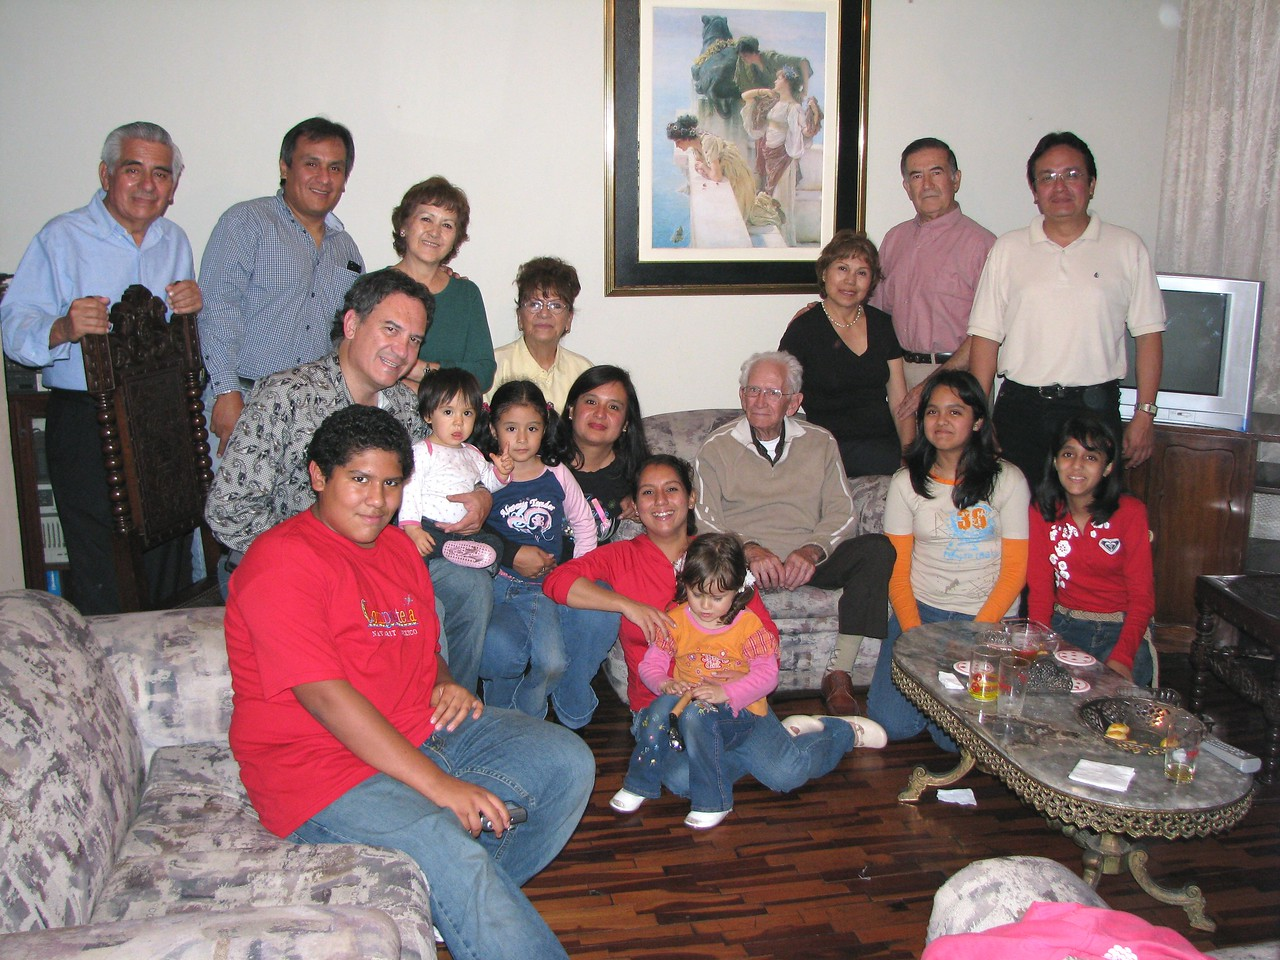 Cousins, aunts, uncles...  lots of family.<br /> Primos, tios, tias...  mucha familia.